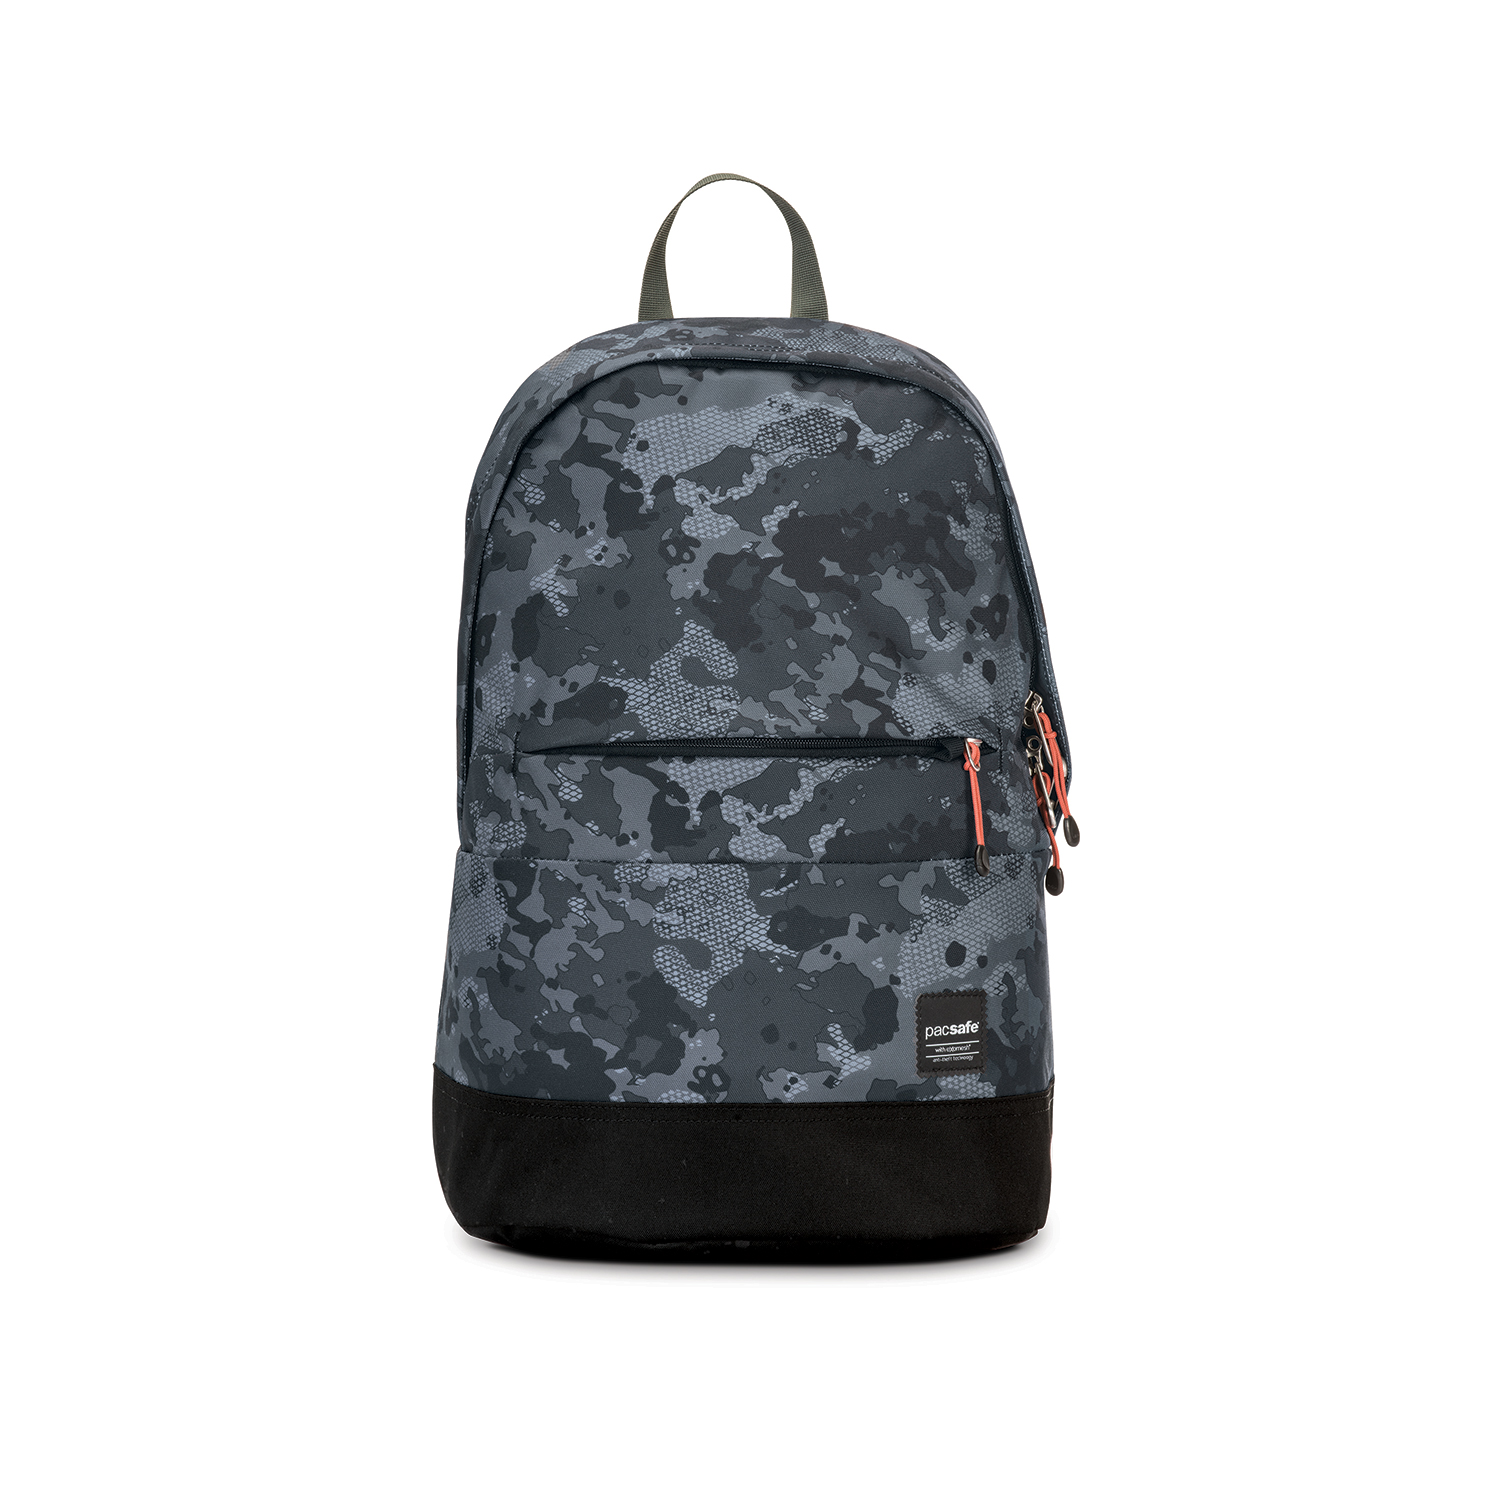 The Slingsafe LX300-Grey Camo